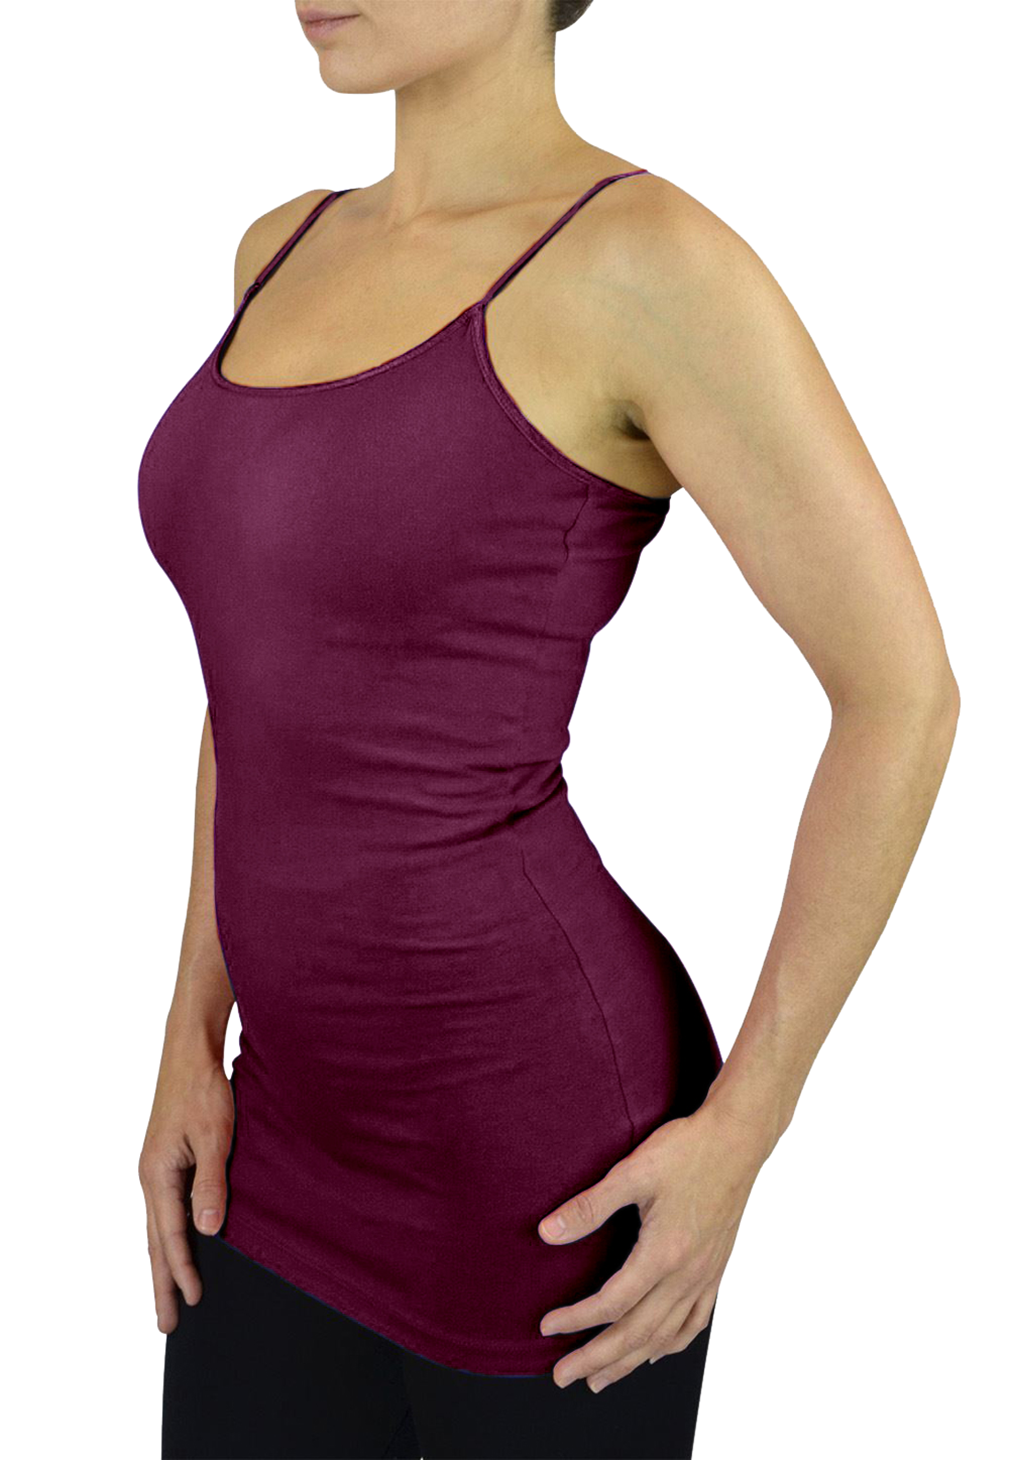 Belle Donne Womens Solid Color Stretch Camisole Spaghetti Strap - Plum/Medium